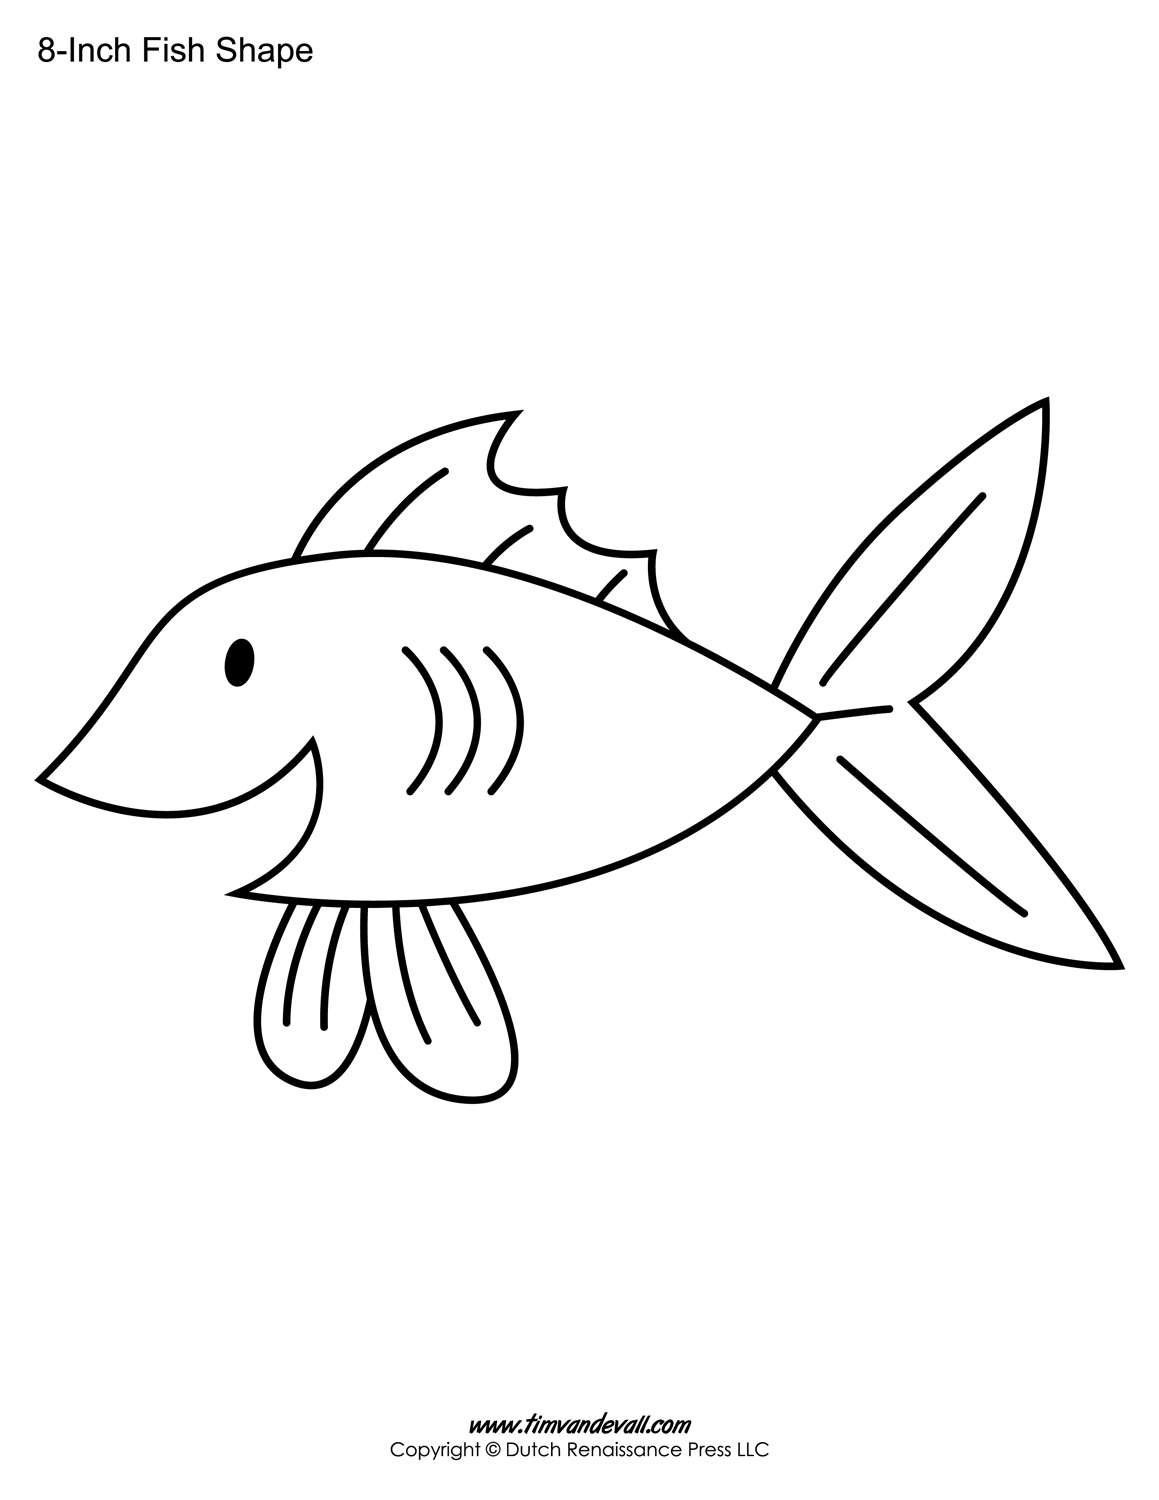 picture relating to Fish Template Printable titled Printable Fish Templates for Young children Preschool Fish Designs